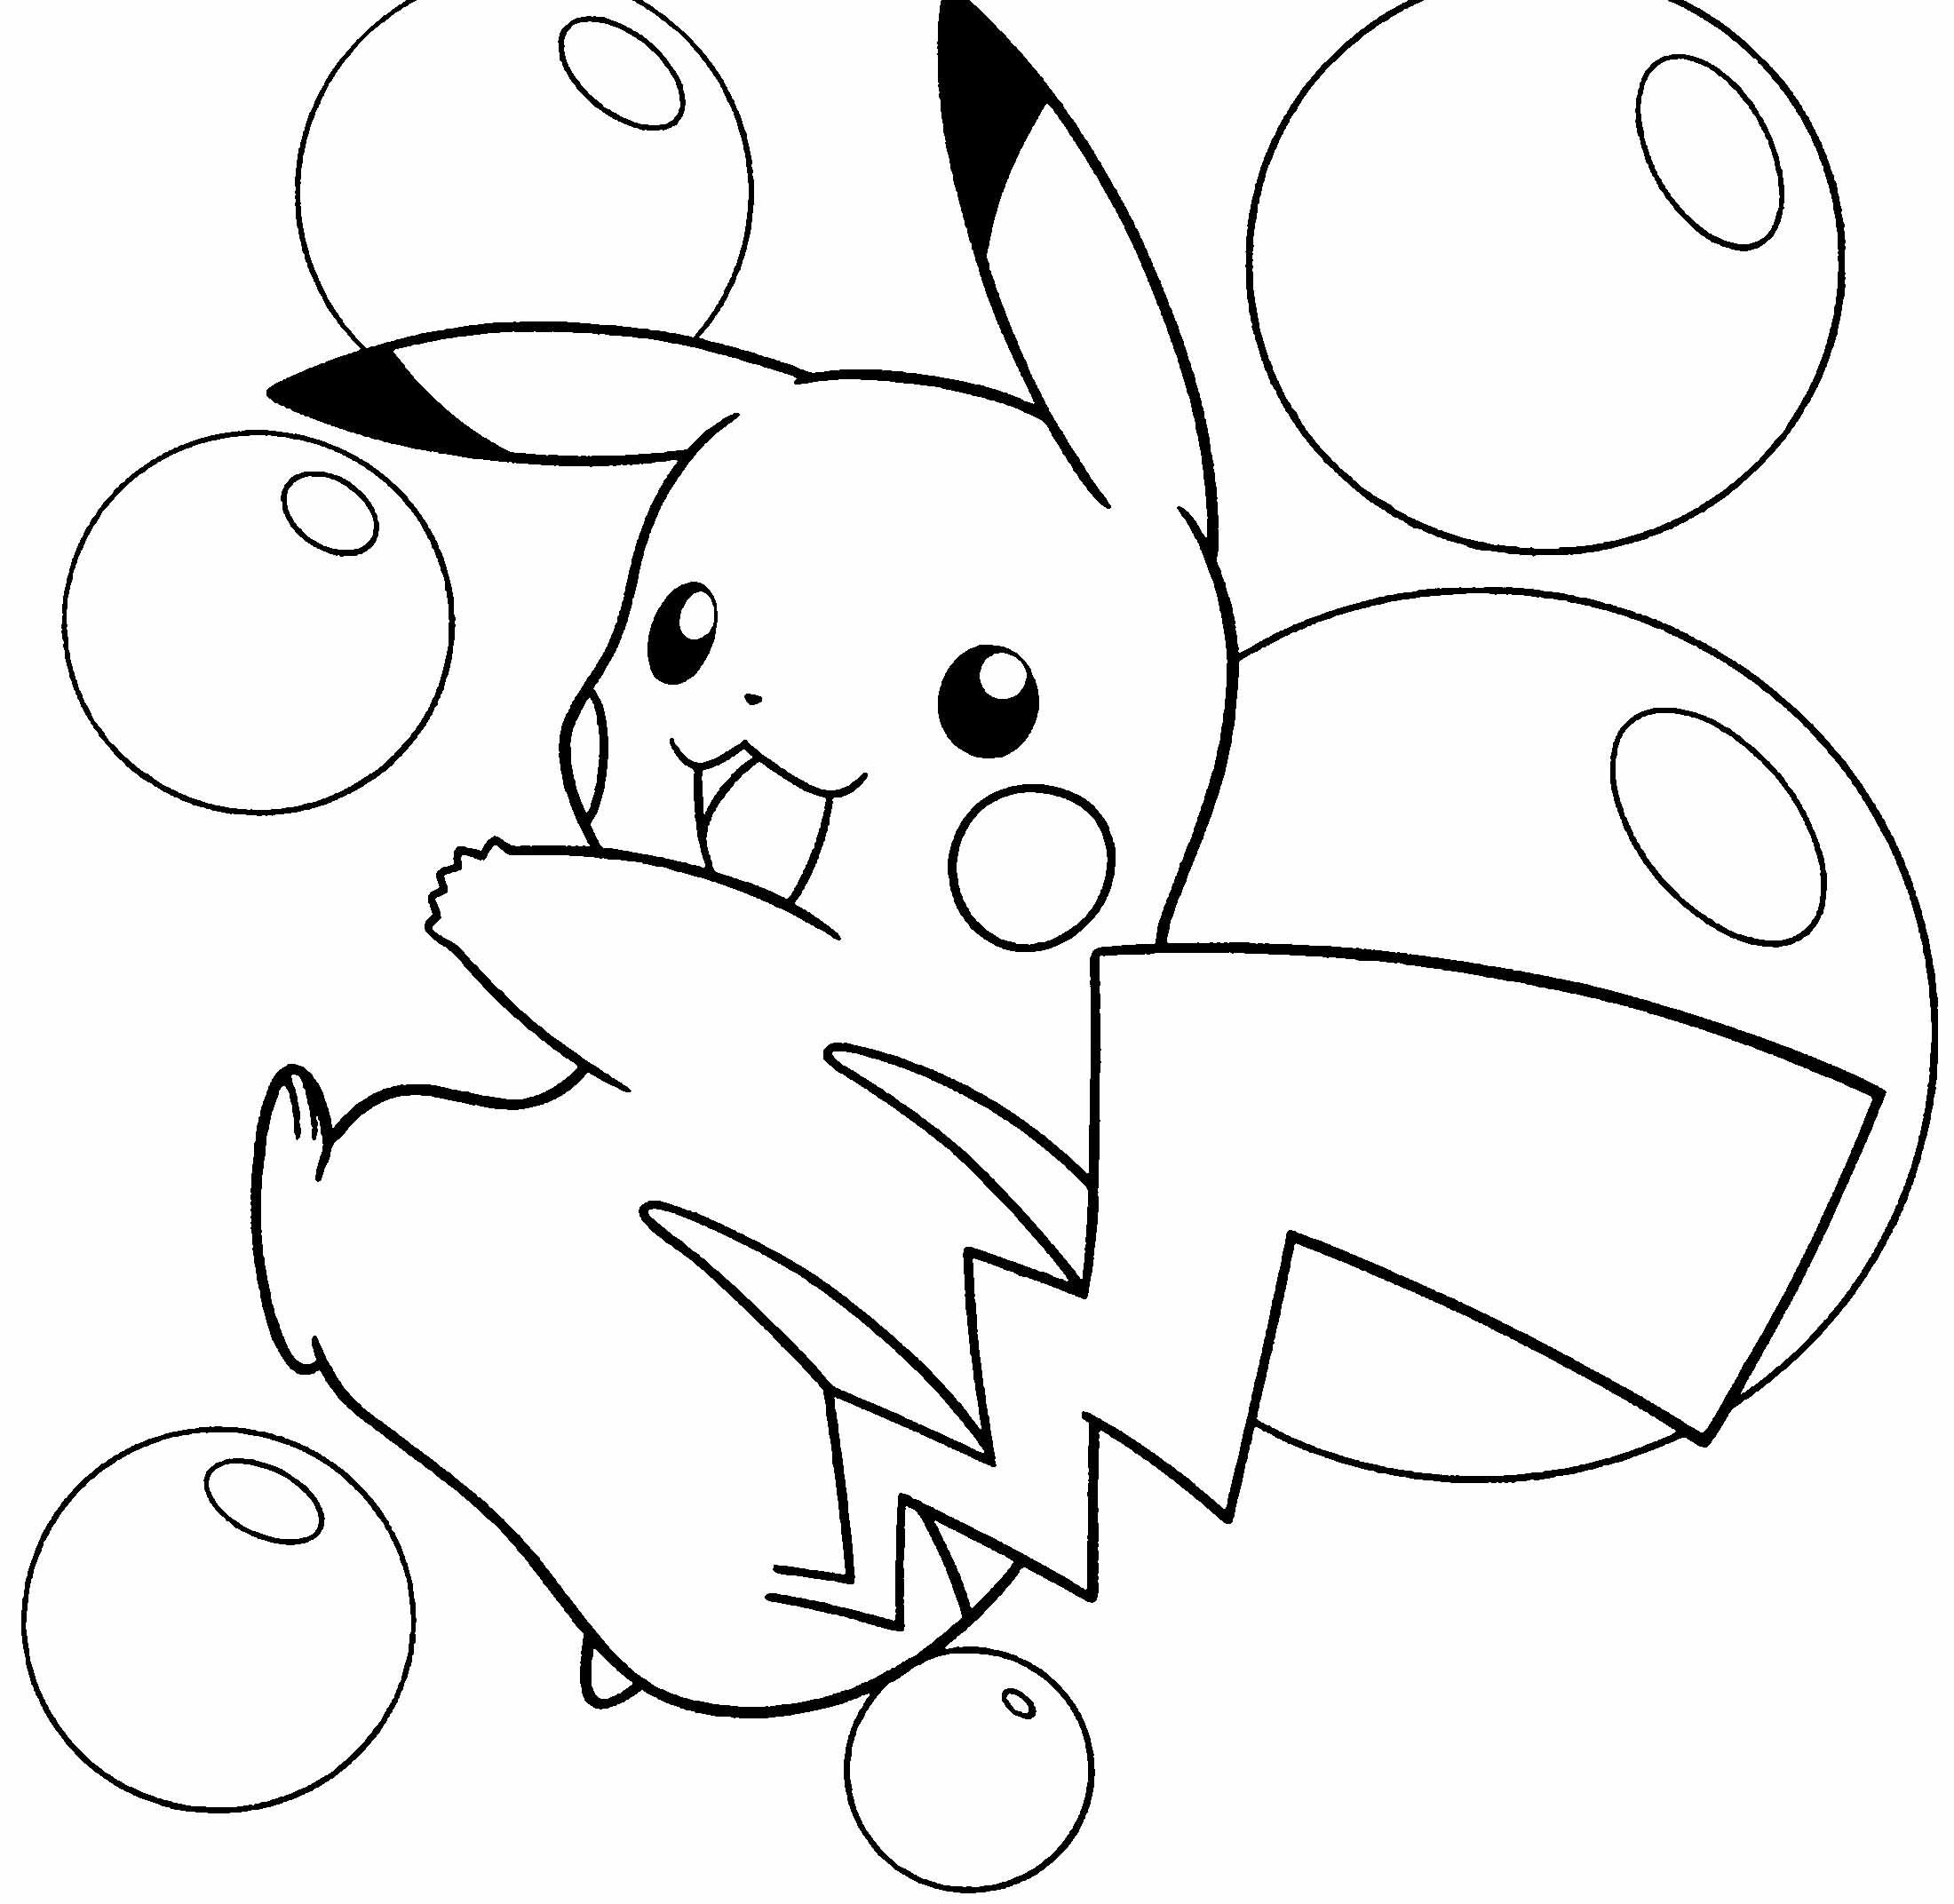 2200x2144 Pikachu Coloring Pages Free Large Images Coloring Book Pikachu